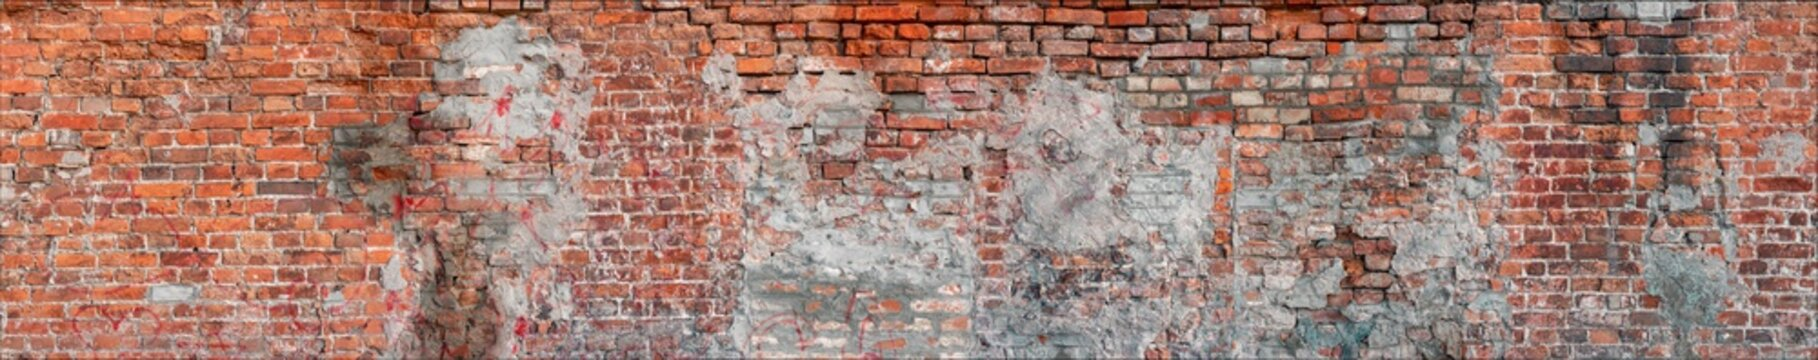 large seamless texture of a brick wall with cracks and defects